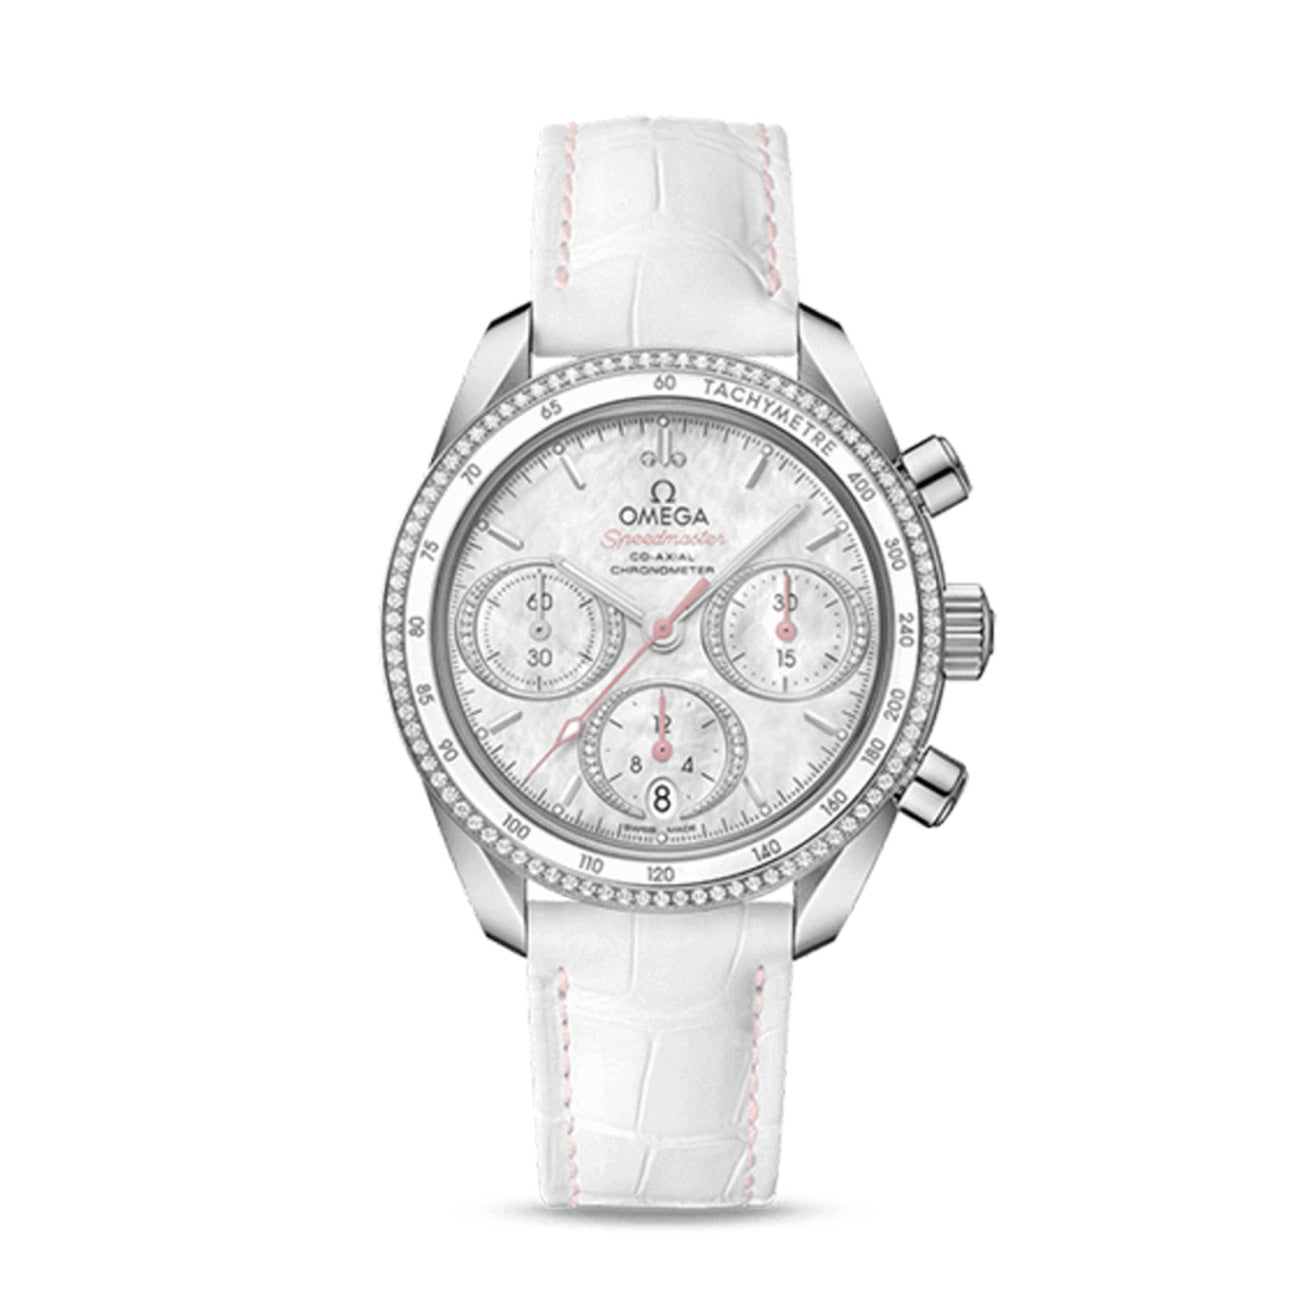 Omega Watches - Speedmaster Speedmaster 38 Co-Axial Chronograph 38 Mm | Manfredi Jewels